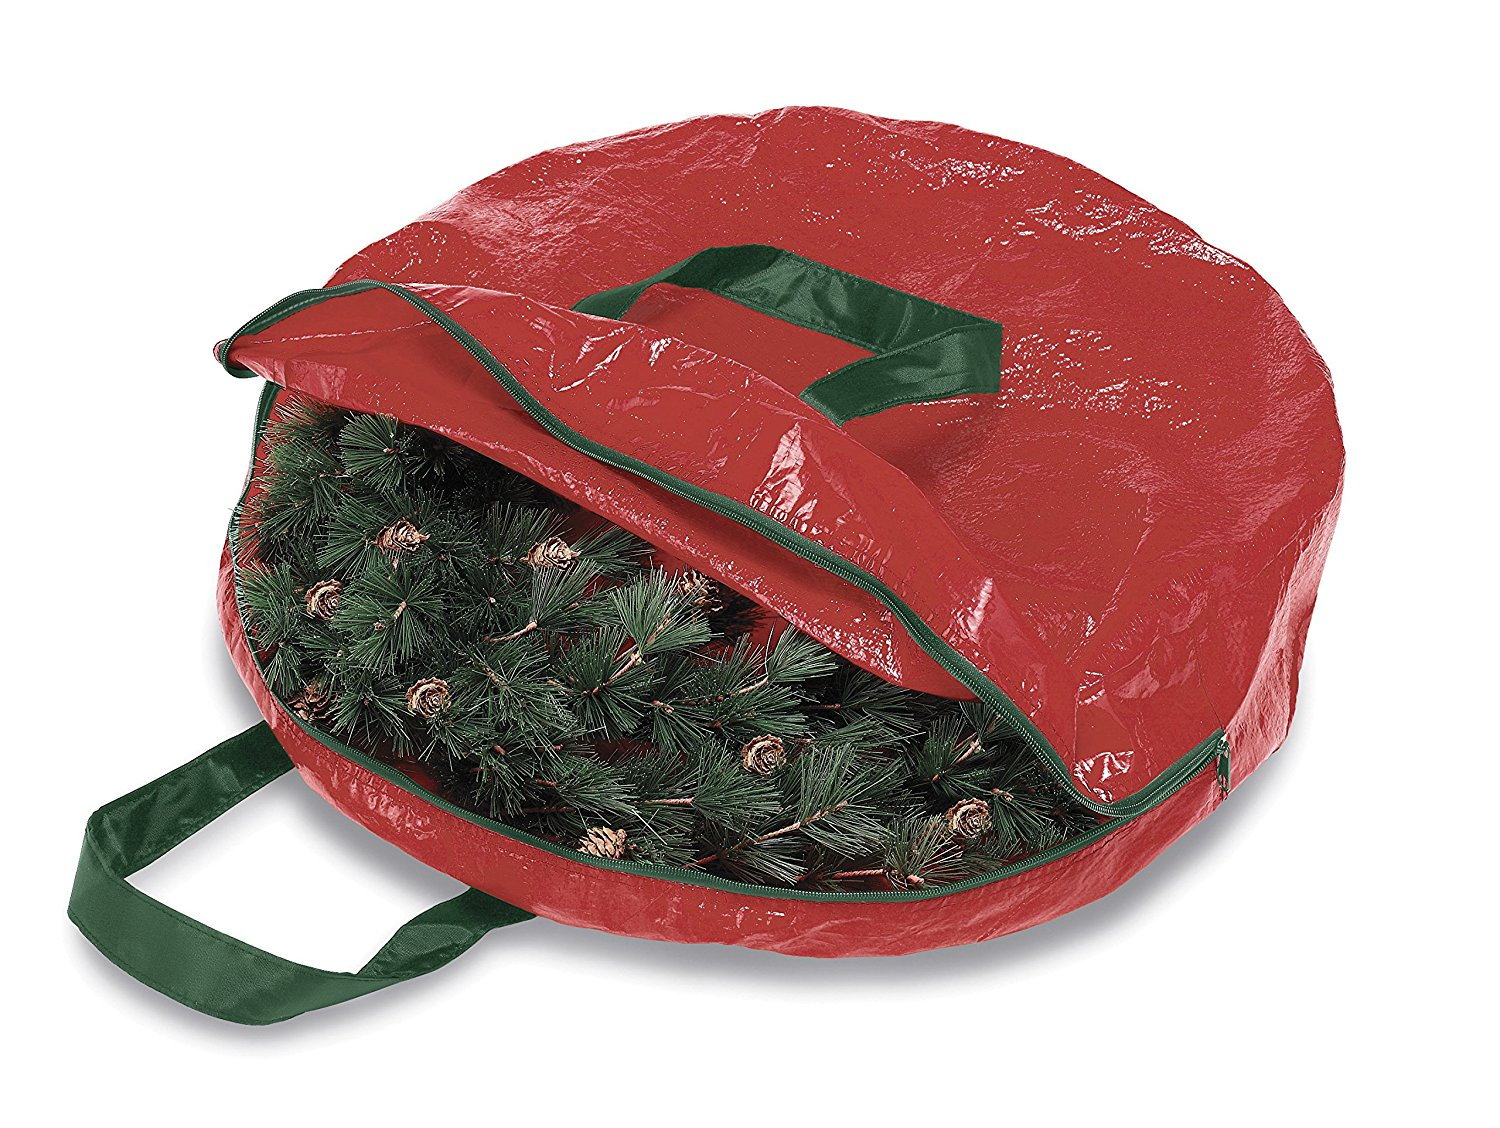 Christmas Wreath and Garland Storage Bag, Heavy Easy 30Inch Zippered Giftwrap Supreme Vacuum Bags Hanging Reusable... by